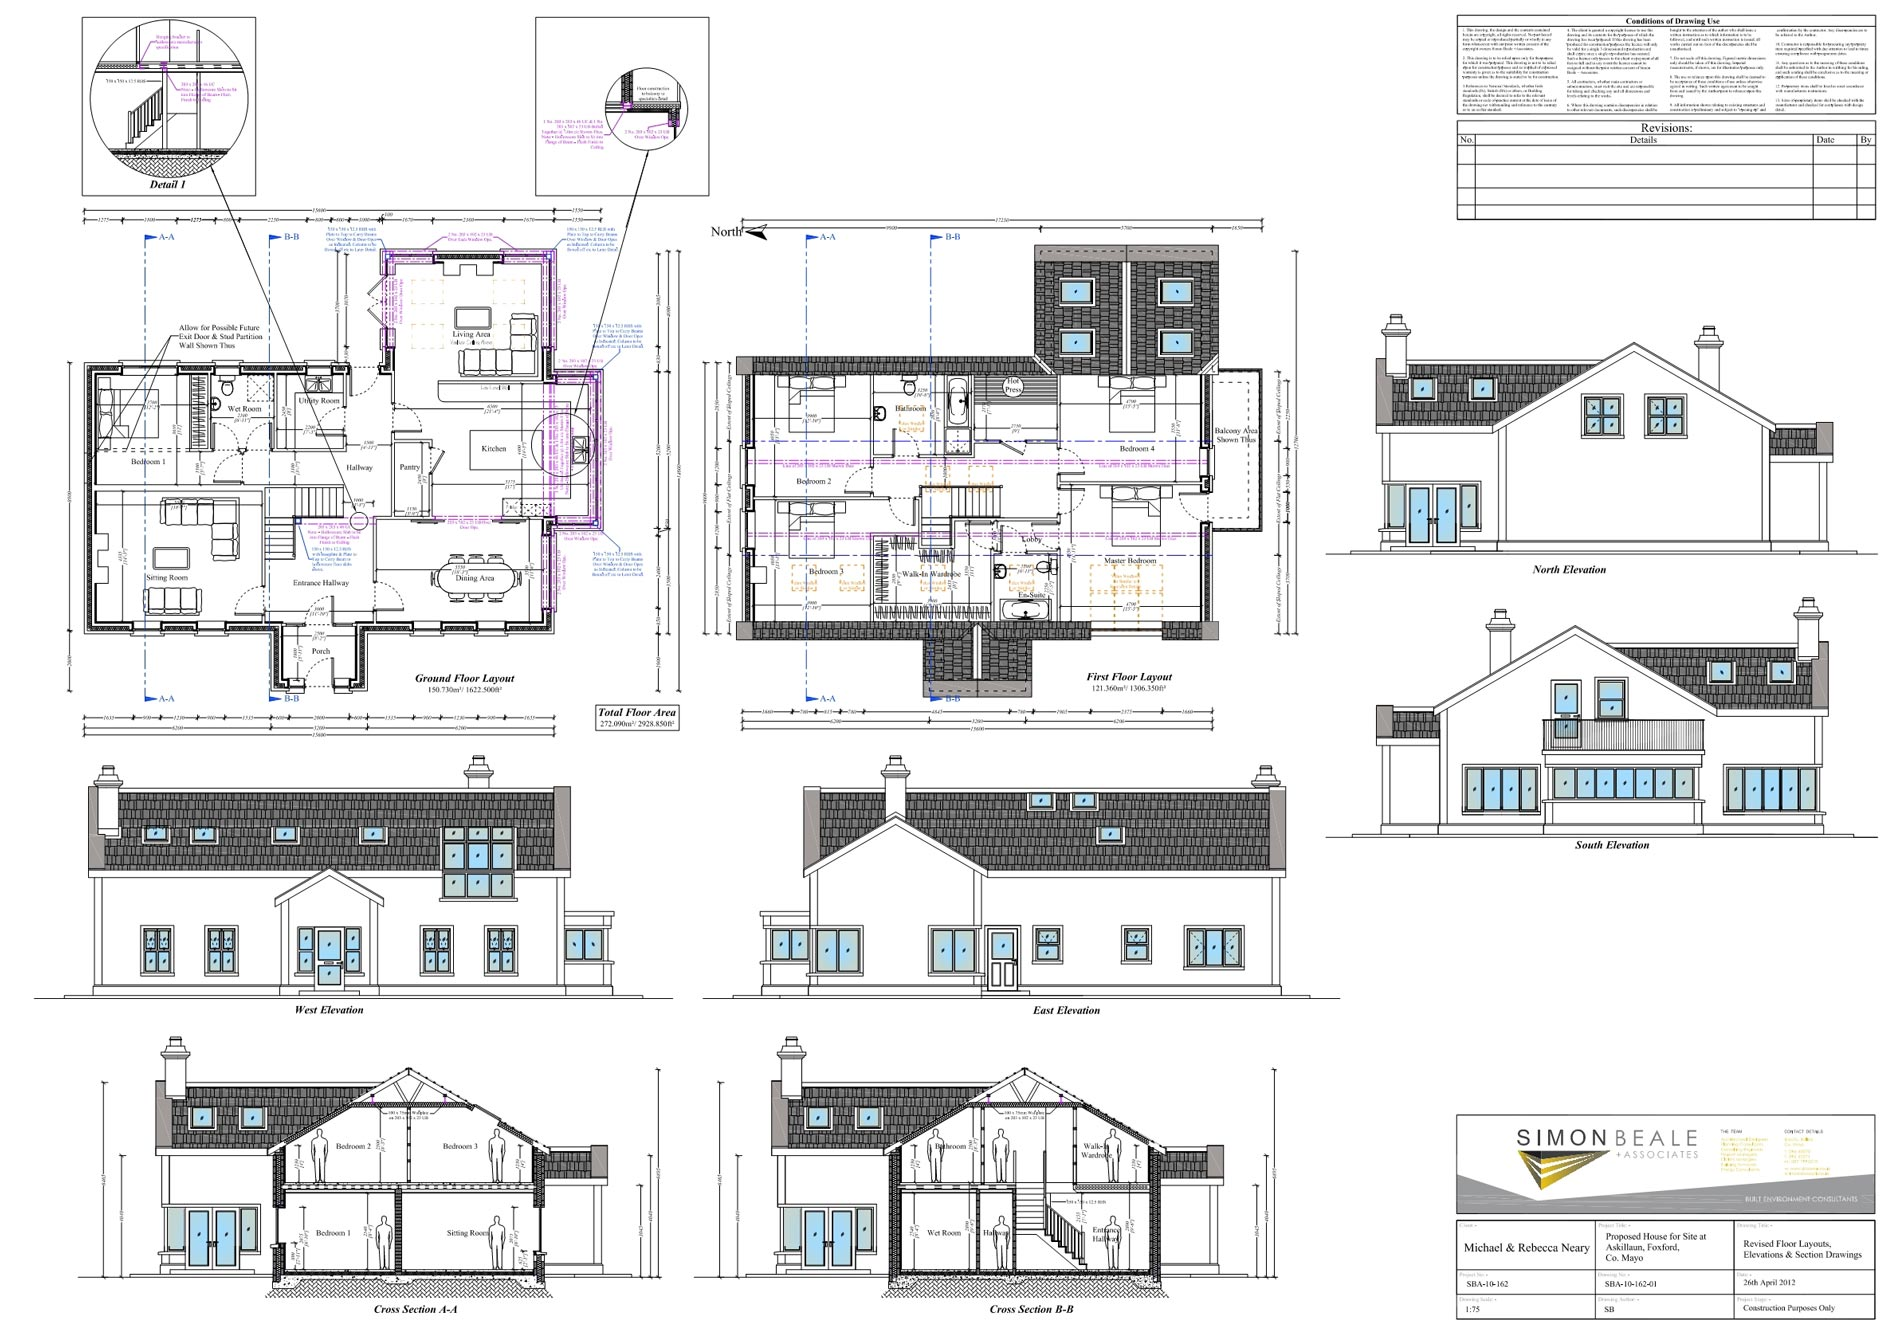 2012-03-23_rev_a_construction_drawings_pagenumber